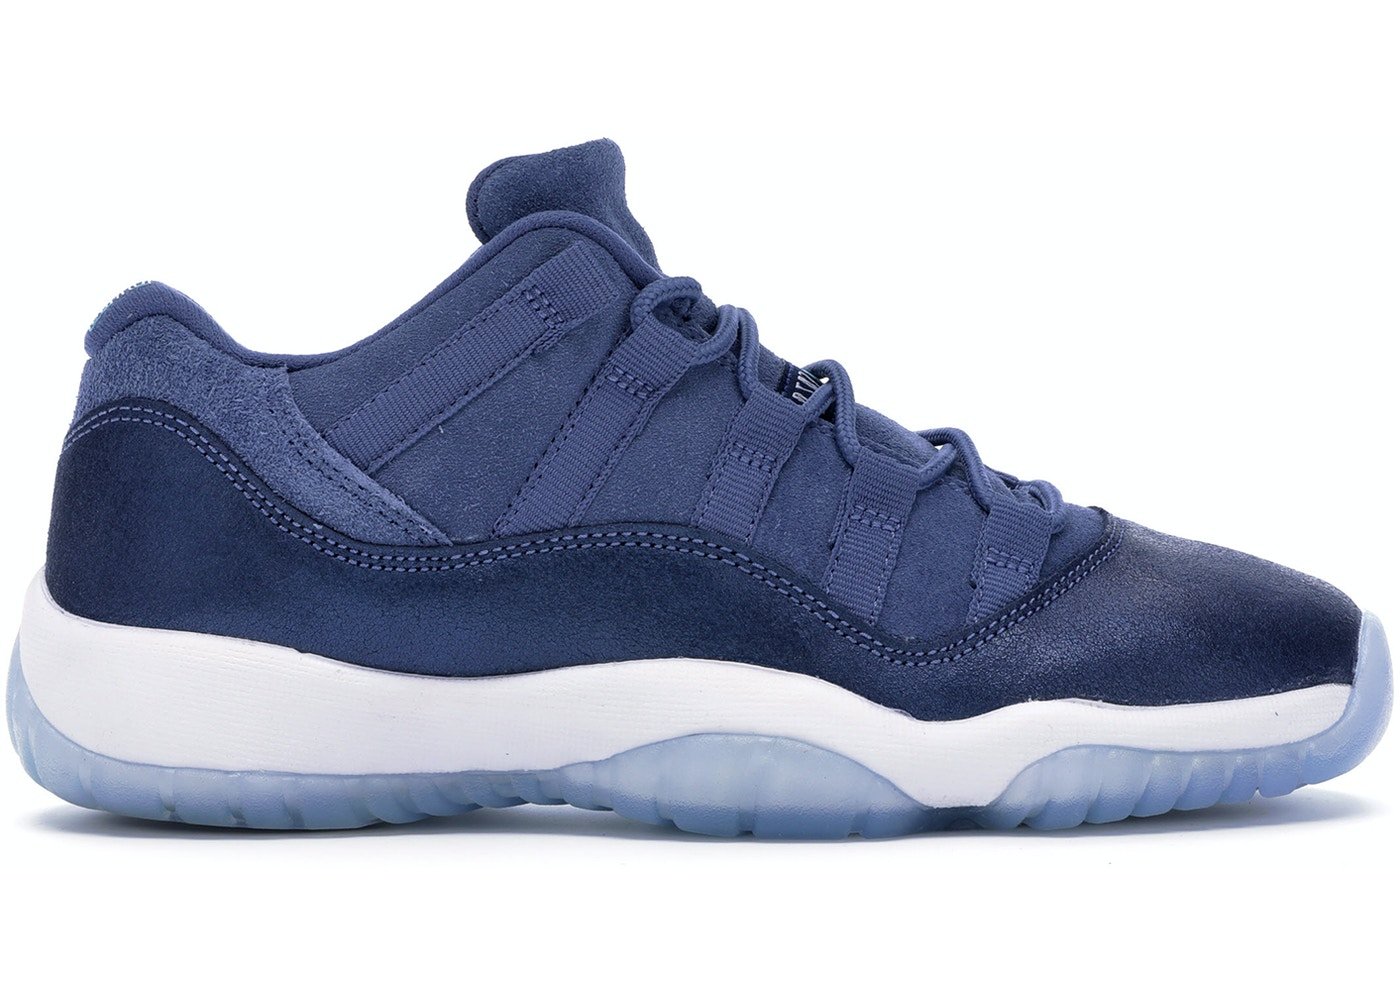 fb814b5f5b4947 Jordan 11 Retro Low Blue Moon (GS) - 580521-408